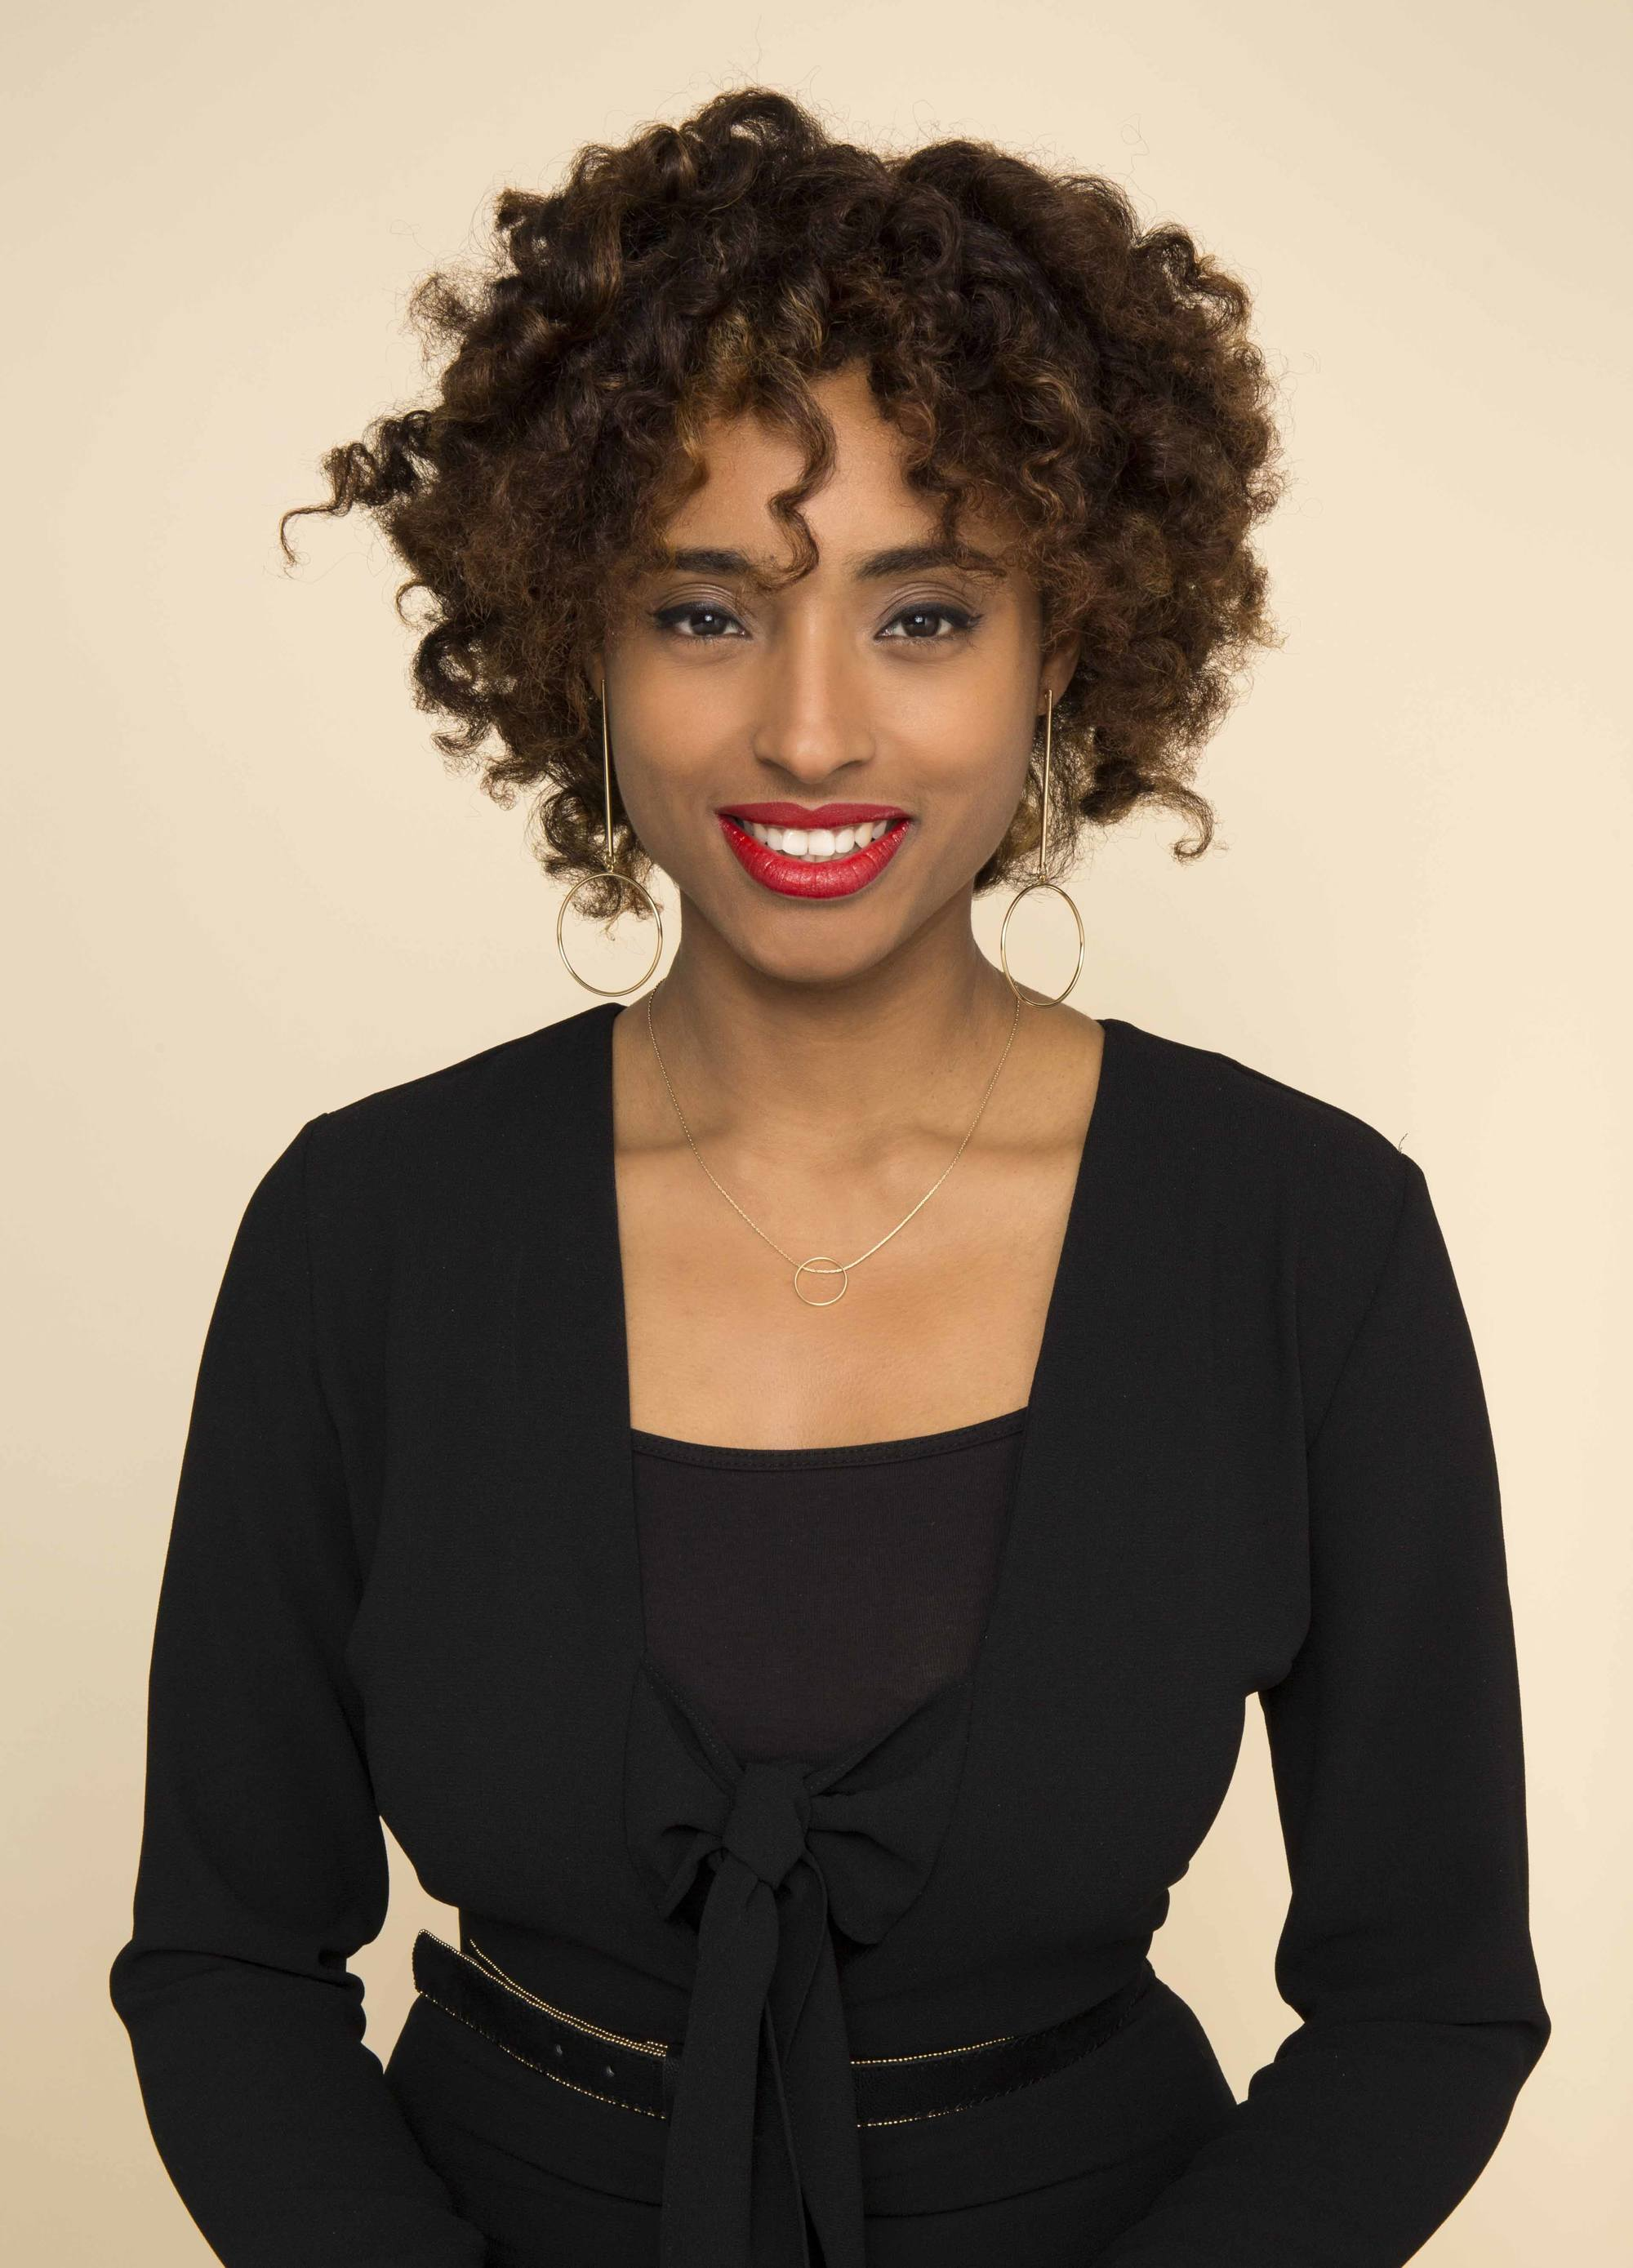 15 Transitioning Hairstyles To Try For Natural Hair This